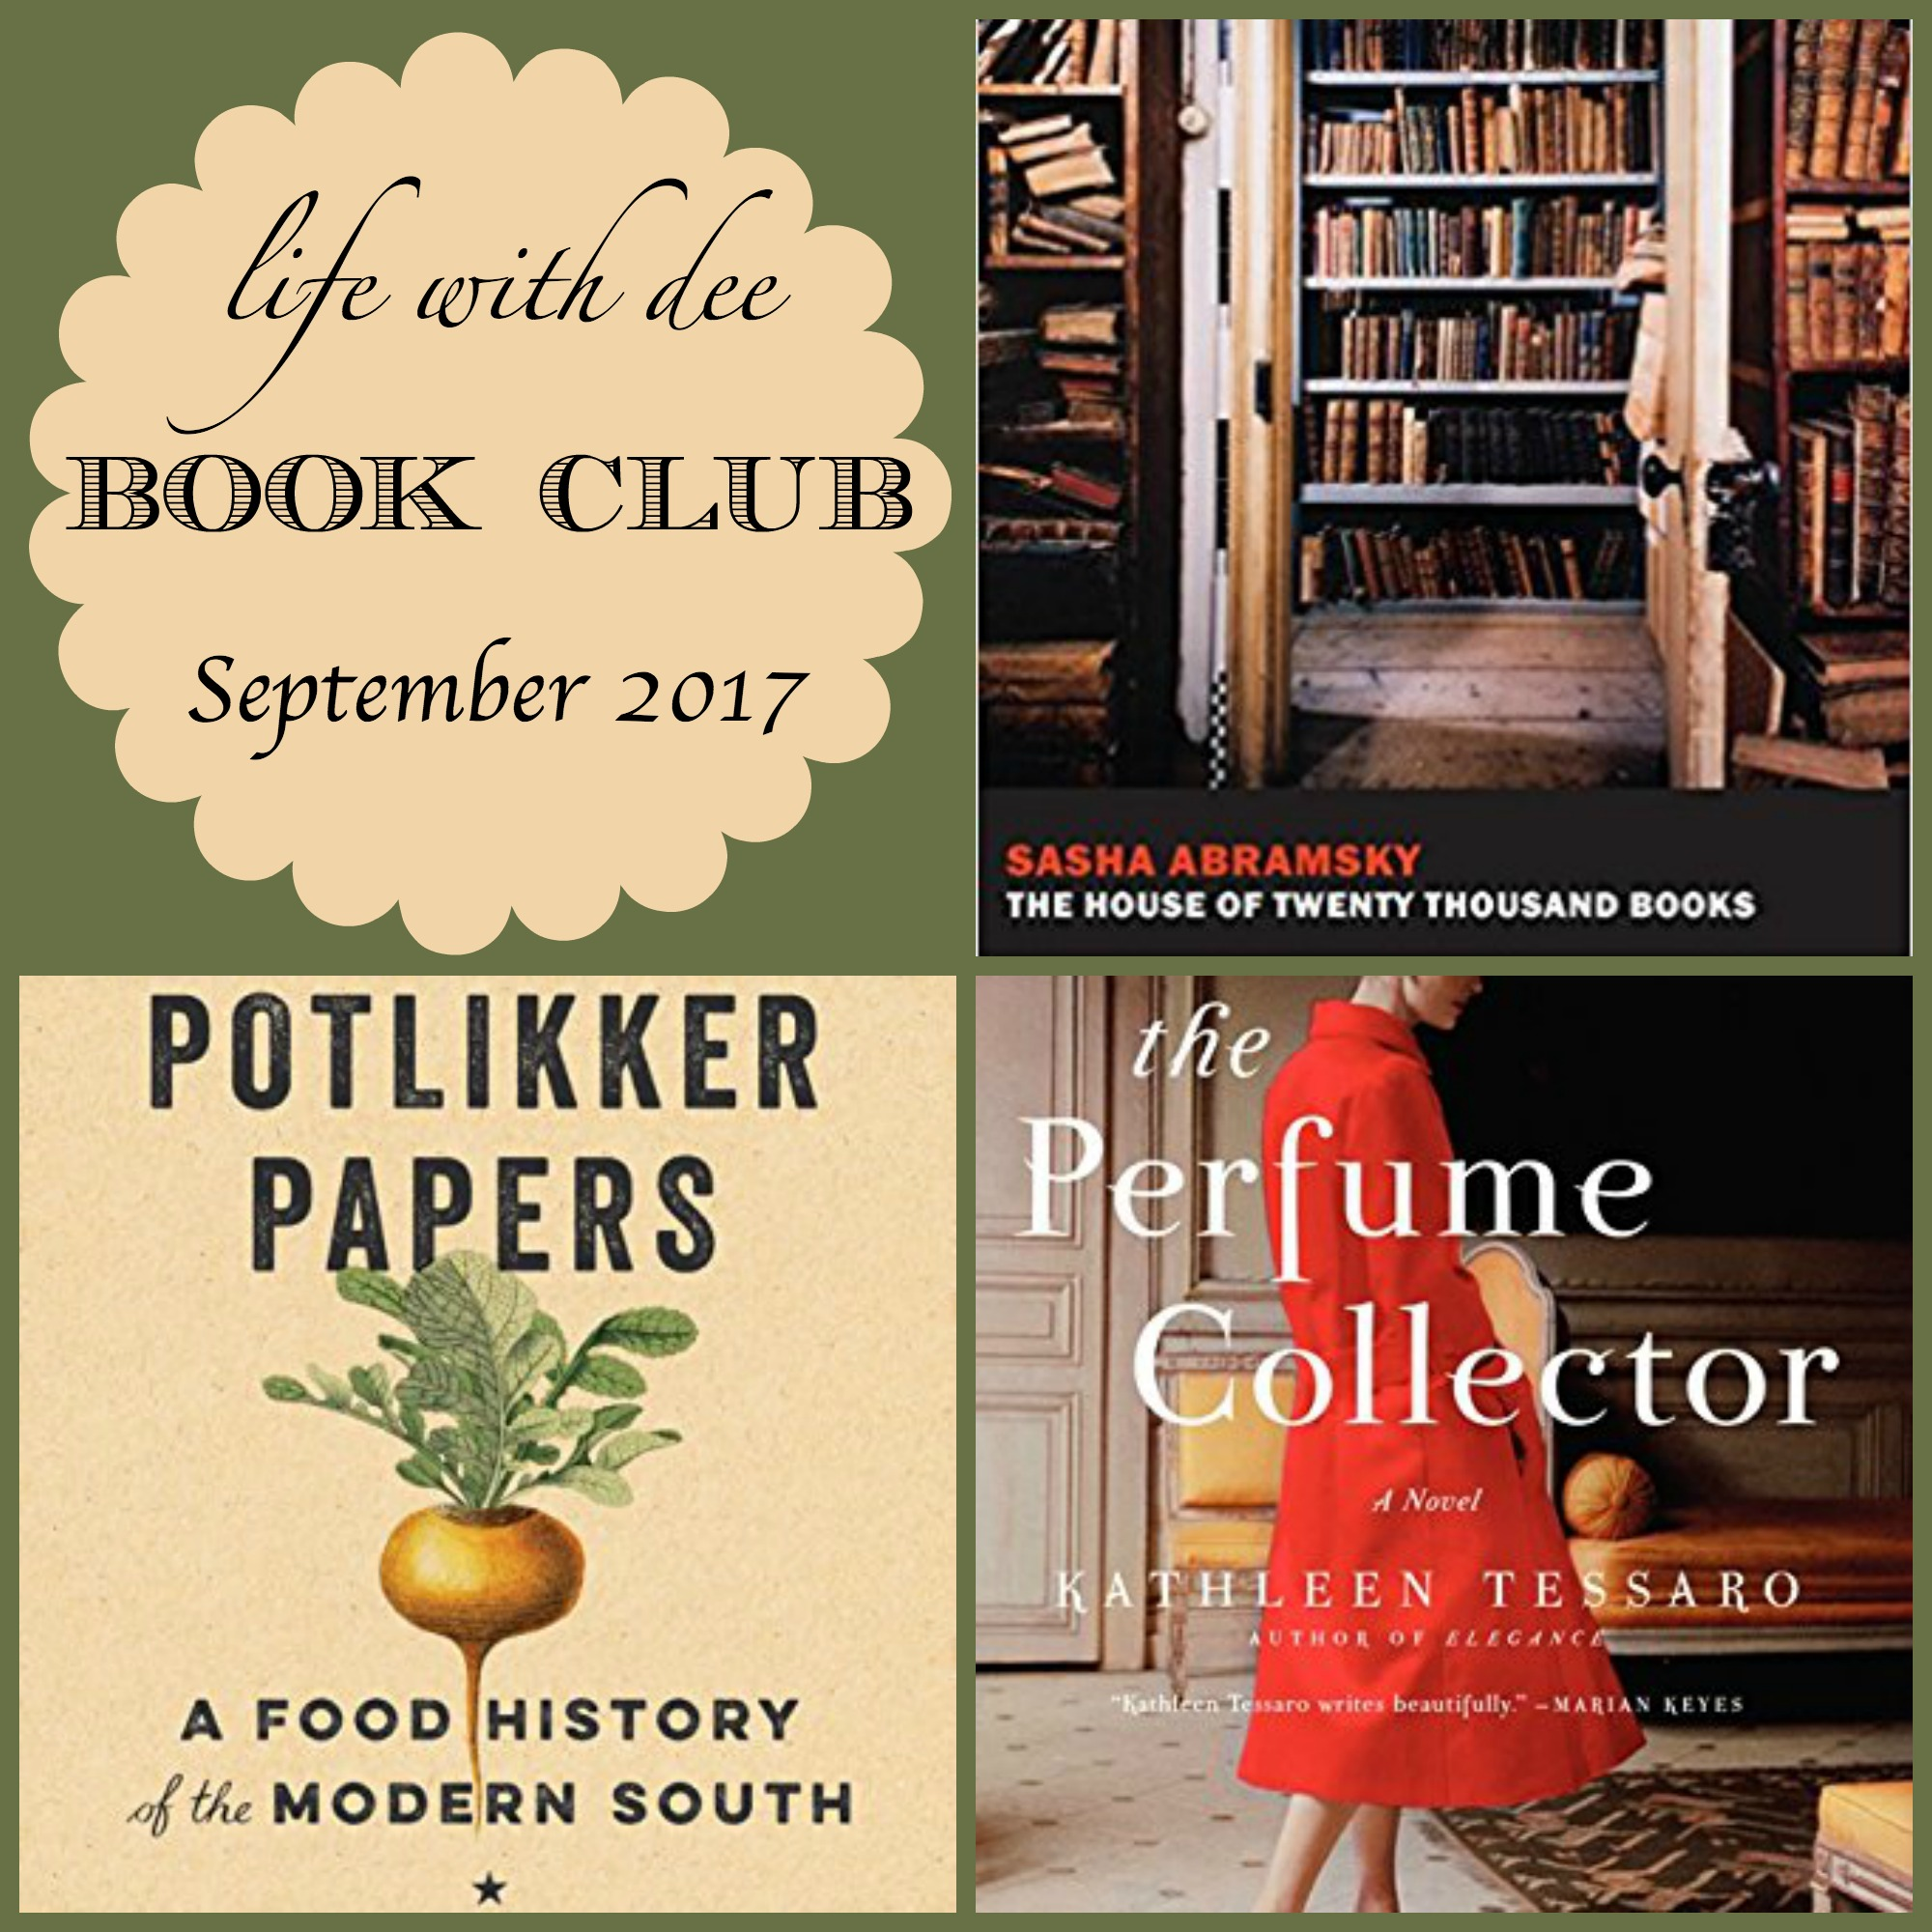 LWD Book Club September 2017